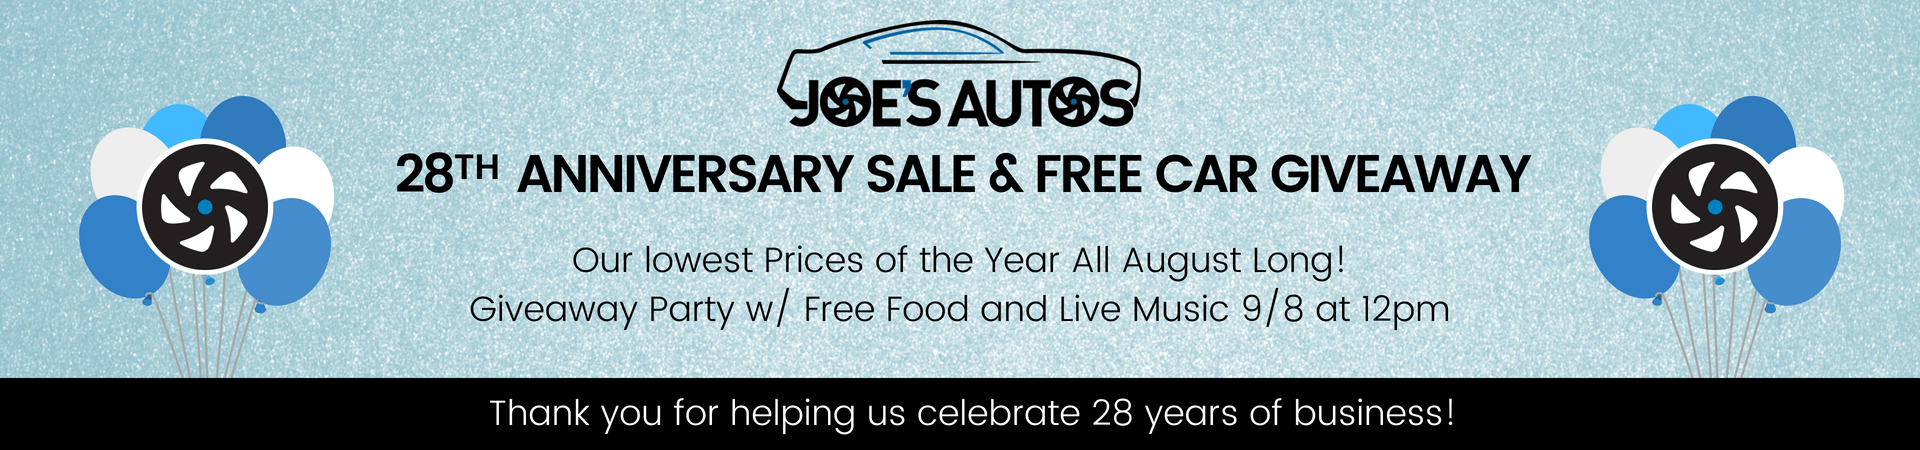 28th Anniversary Sale